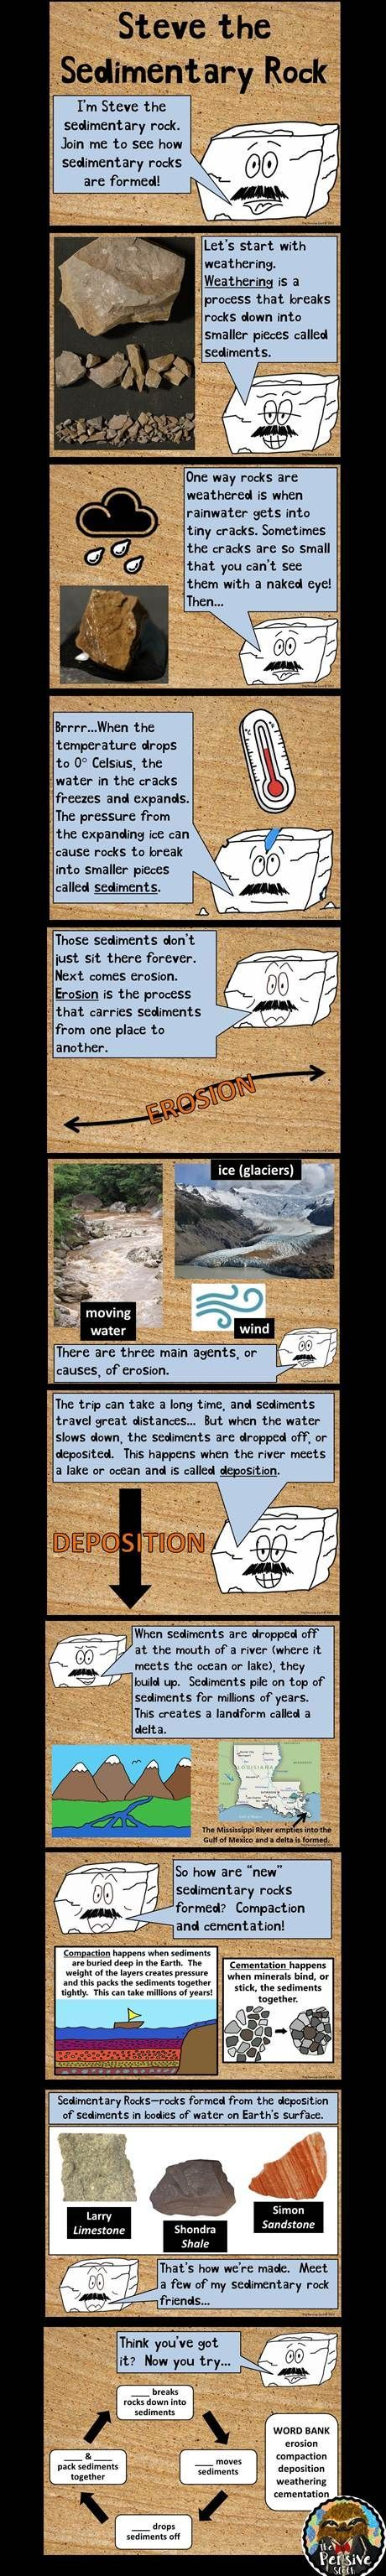 Weathering, erosion, deposition, and sedimentary rocks for 4th and 5th grade. These slides are available as a powerpoint with guided notes and 2 other science notebook activities.